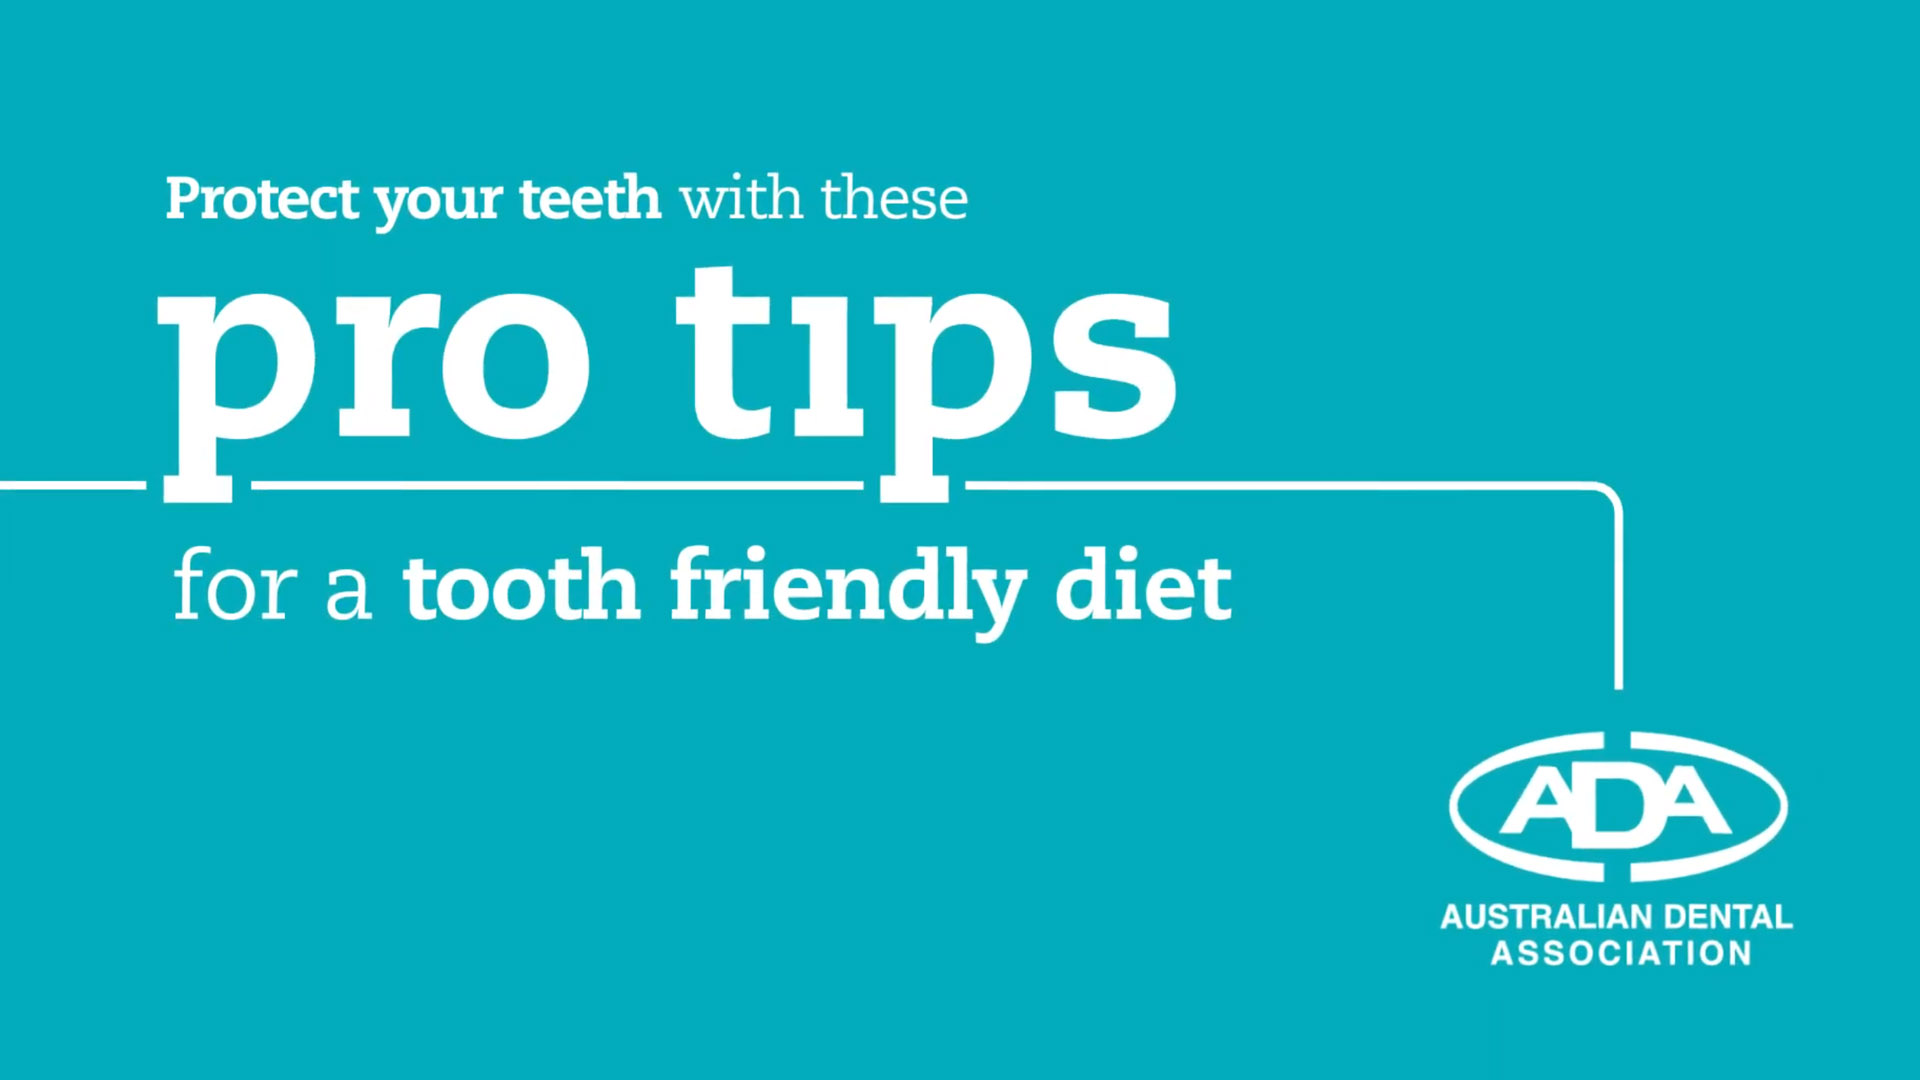 Essential Dental Pro Tips for a Tooth Friendly Diet